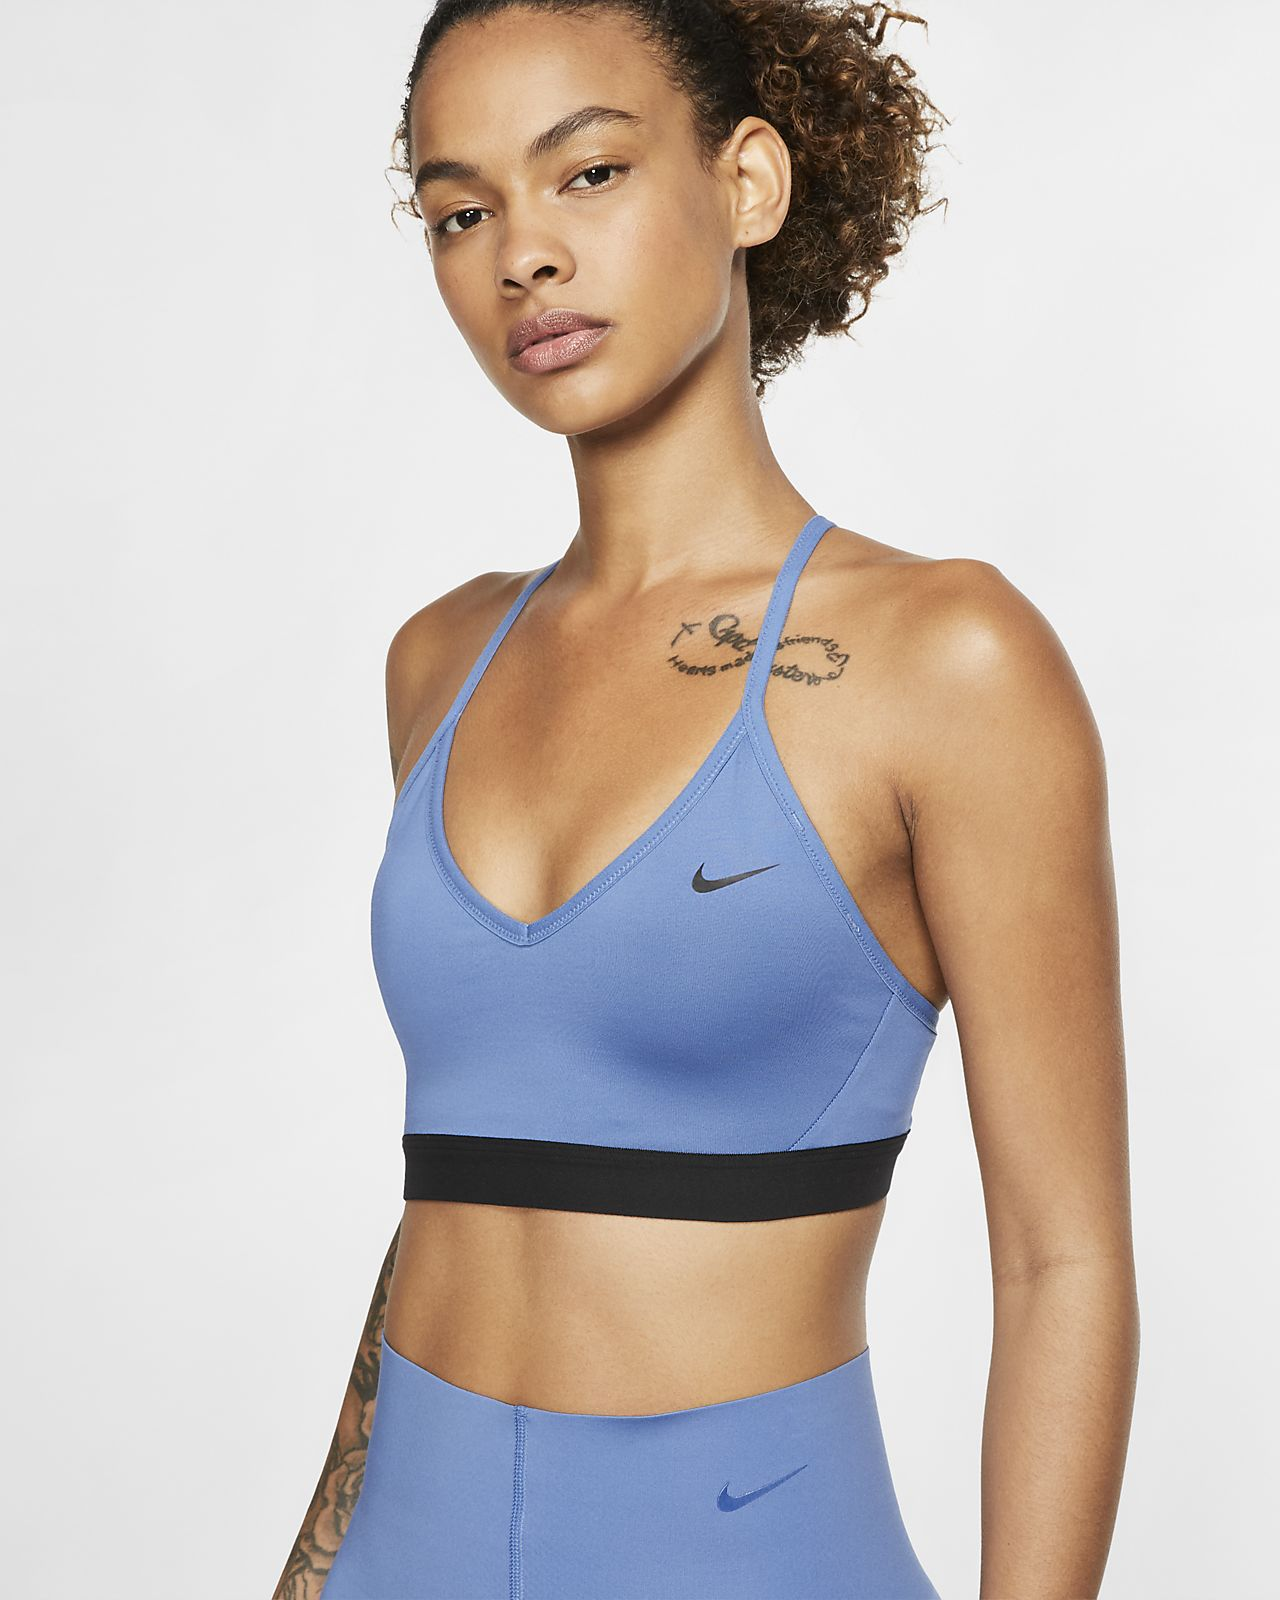 364fbc17e Nike Indy Women s Light-Support Sports Bra. Nike.com